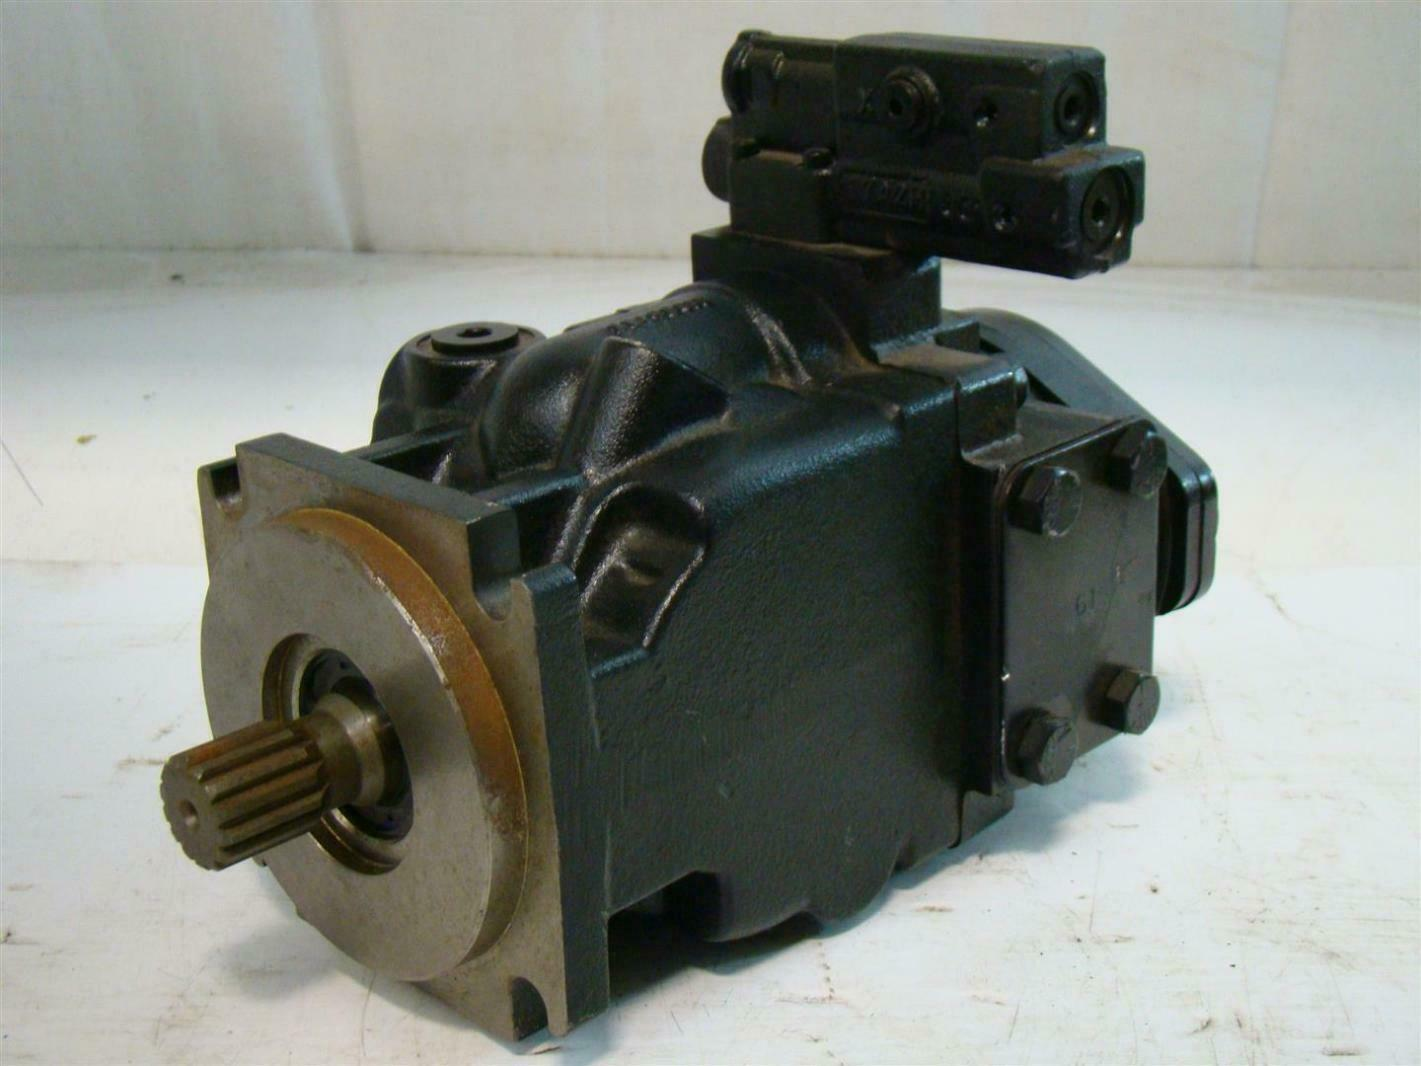 Sauer Danfoss Hydraulic Piston Pump Jrr060bls2020nnn3